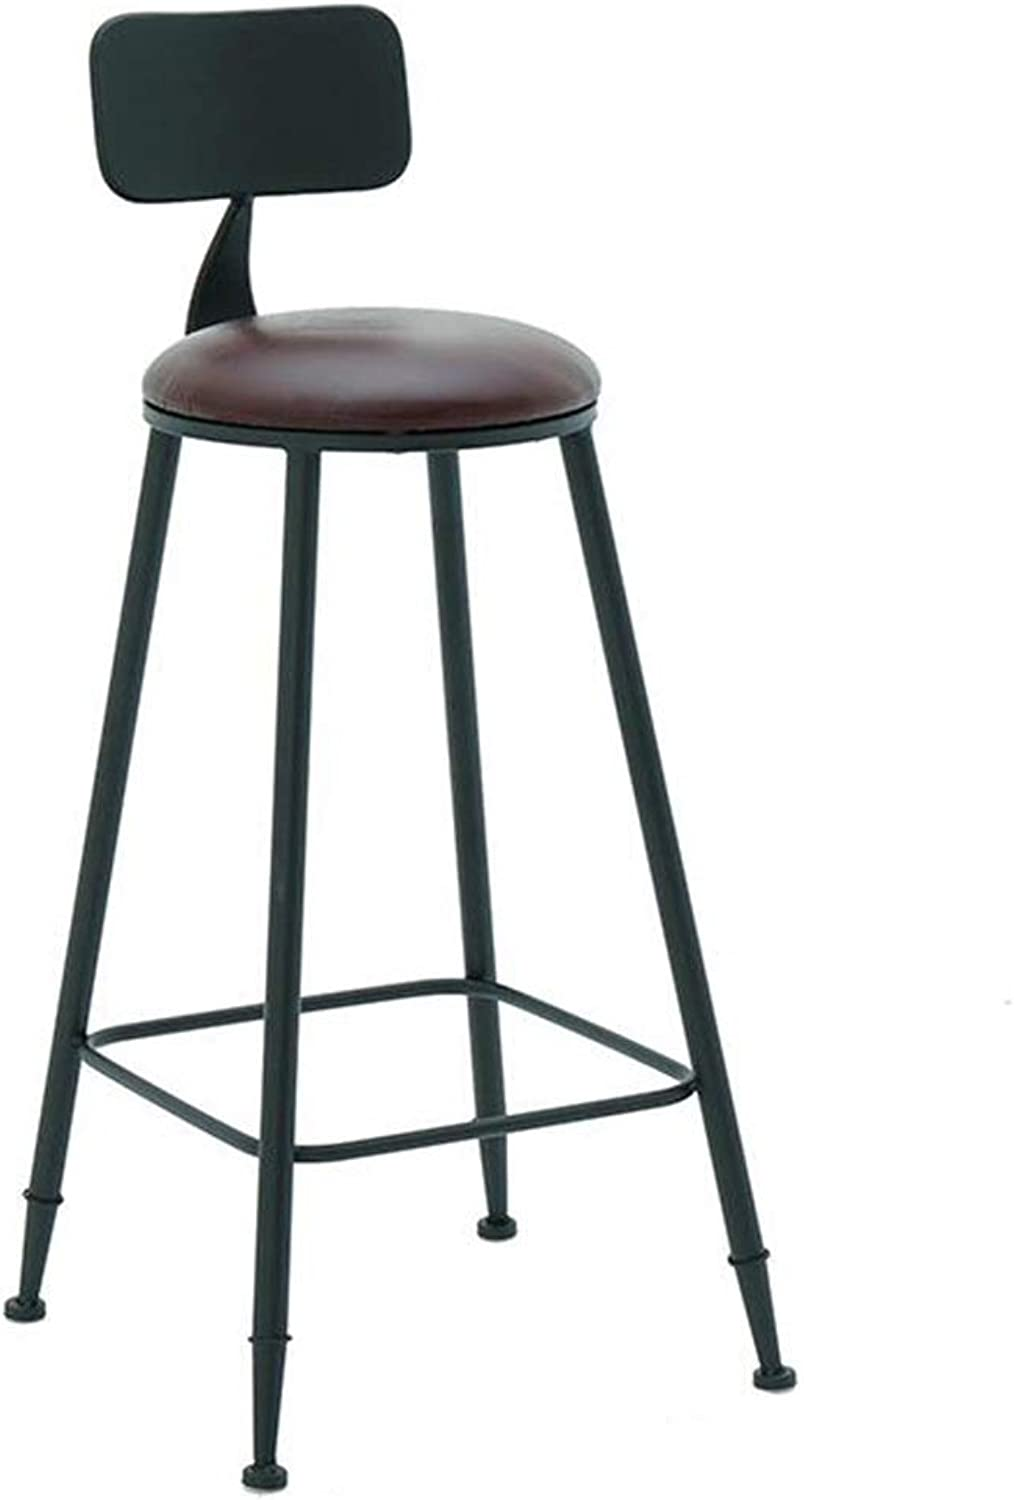 BARSTOOLRI Bar Stool with Backrest, Sturdy Durable Fashion Round Seat Ergonomics High Chair for Living Room Kitchen Office